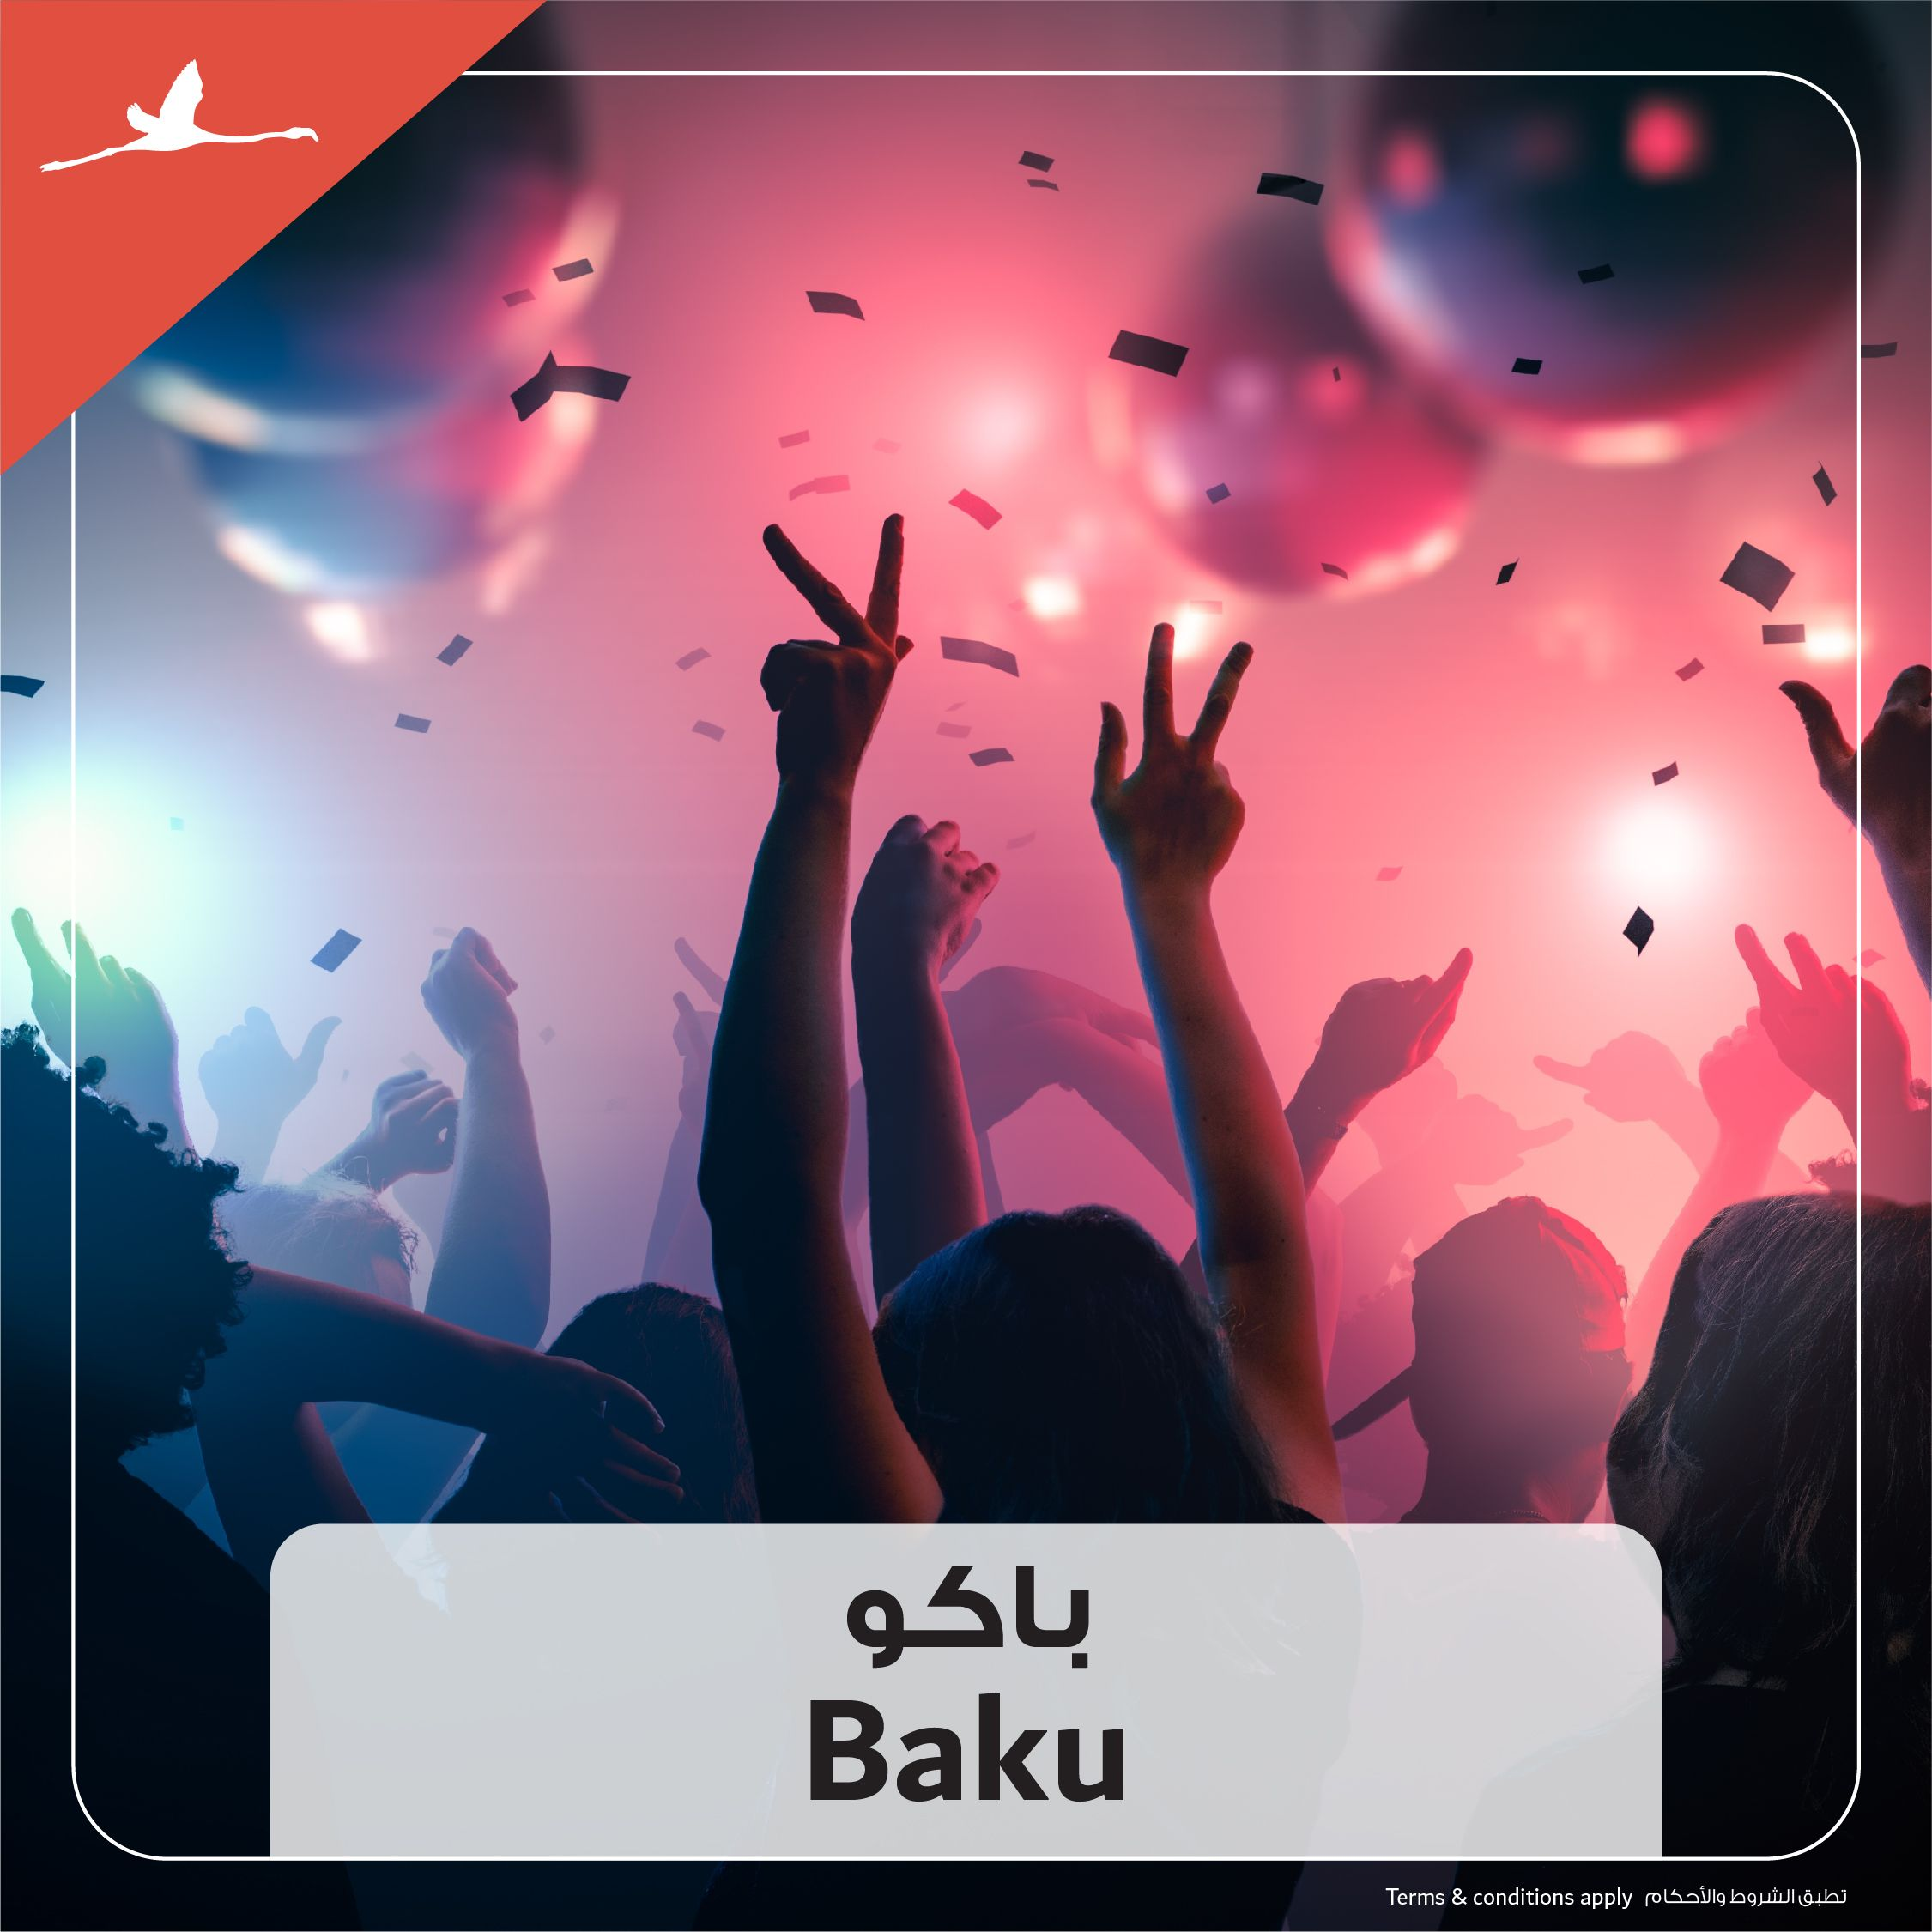 Baku Party Destination Tours From Bahrain Itl World 5 Days From Bhd 130